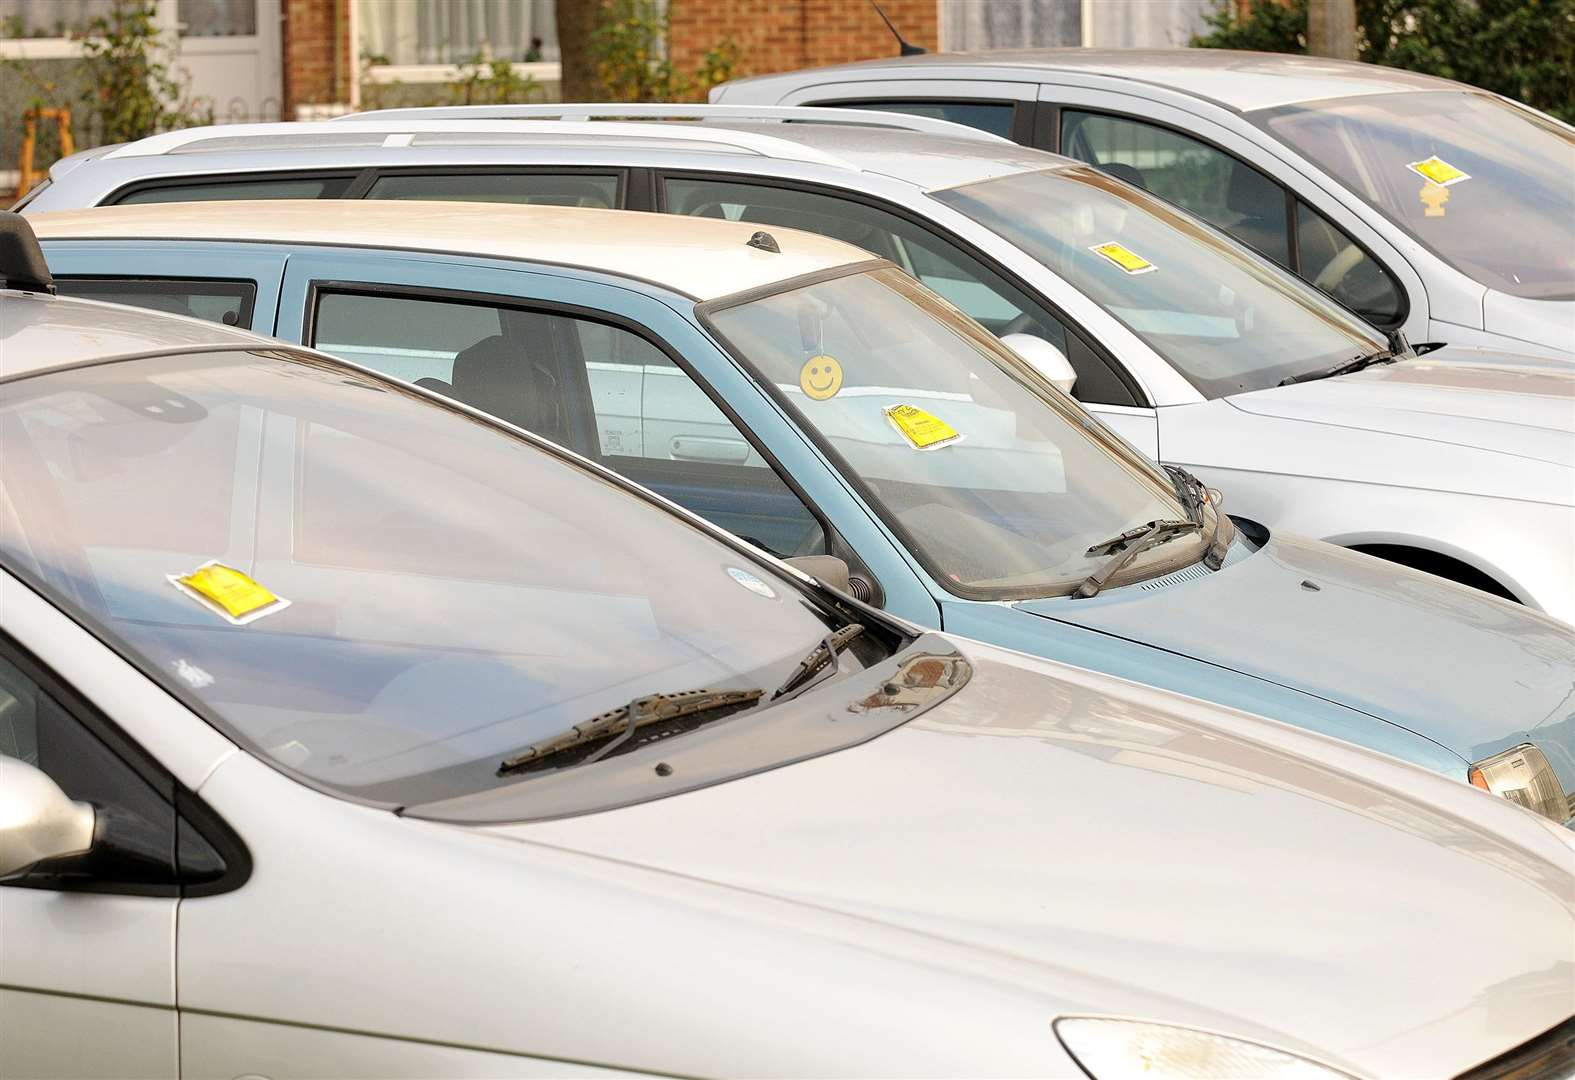 Crackdown against illegal parking planned in Sudbury under new policing model